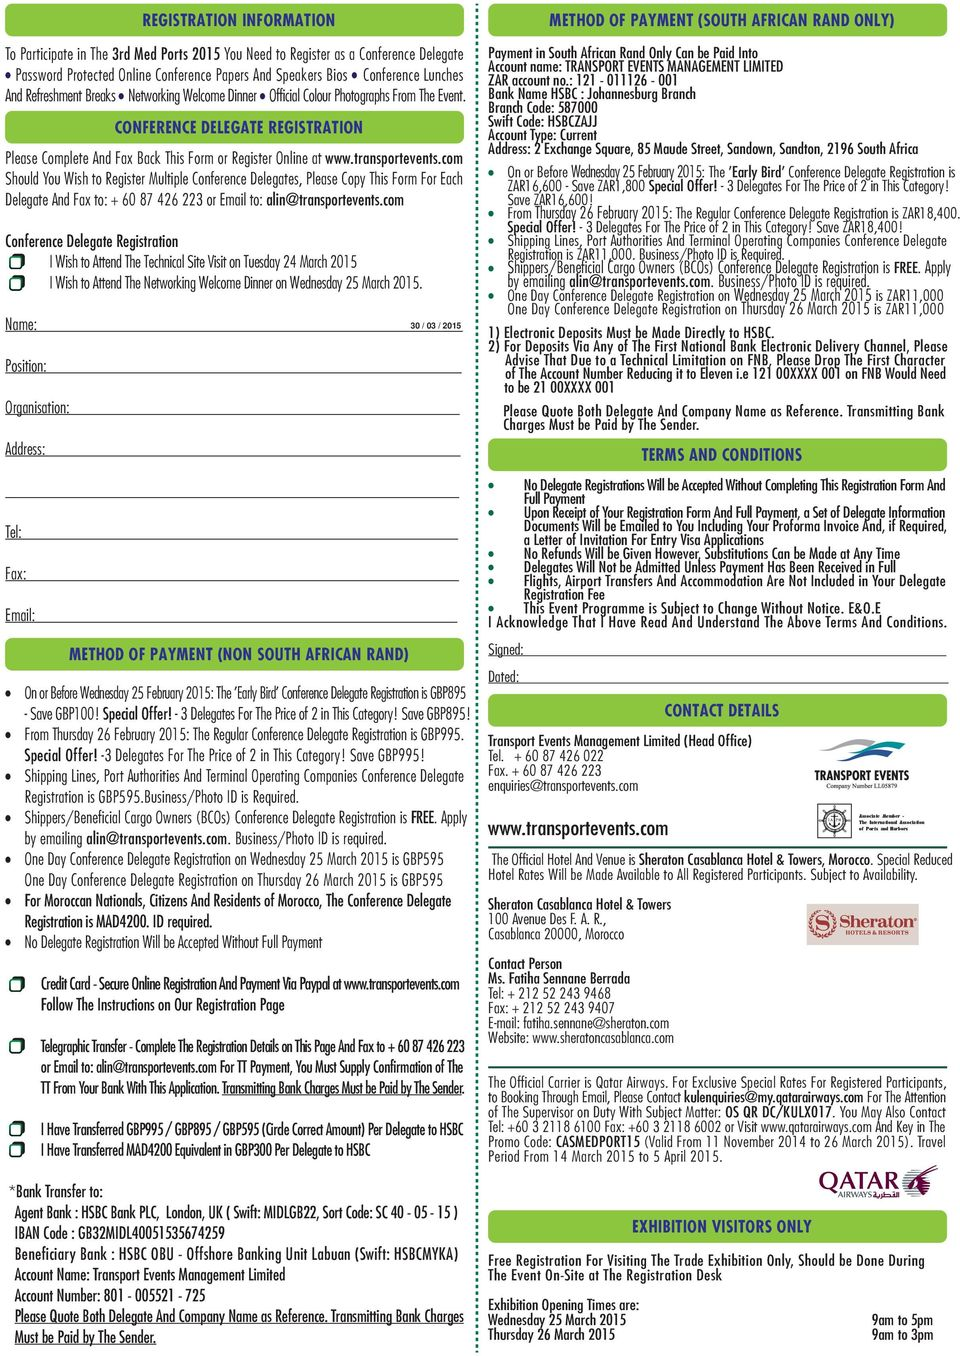 com Should You Wish to Register Multiple Conference Delegates, Please Copy This Form For Each Delegate And Fax to: + 60 87 426 223 or Email to: alin@transportevents.